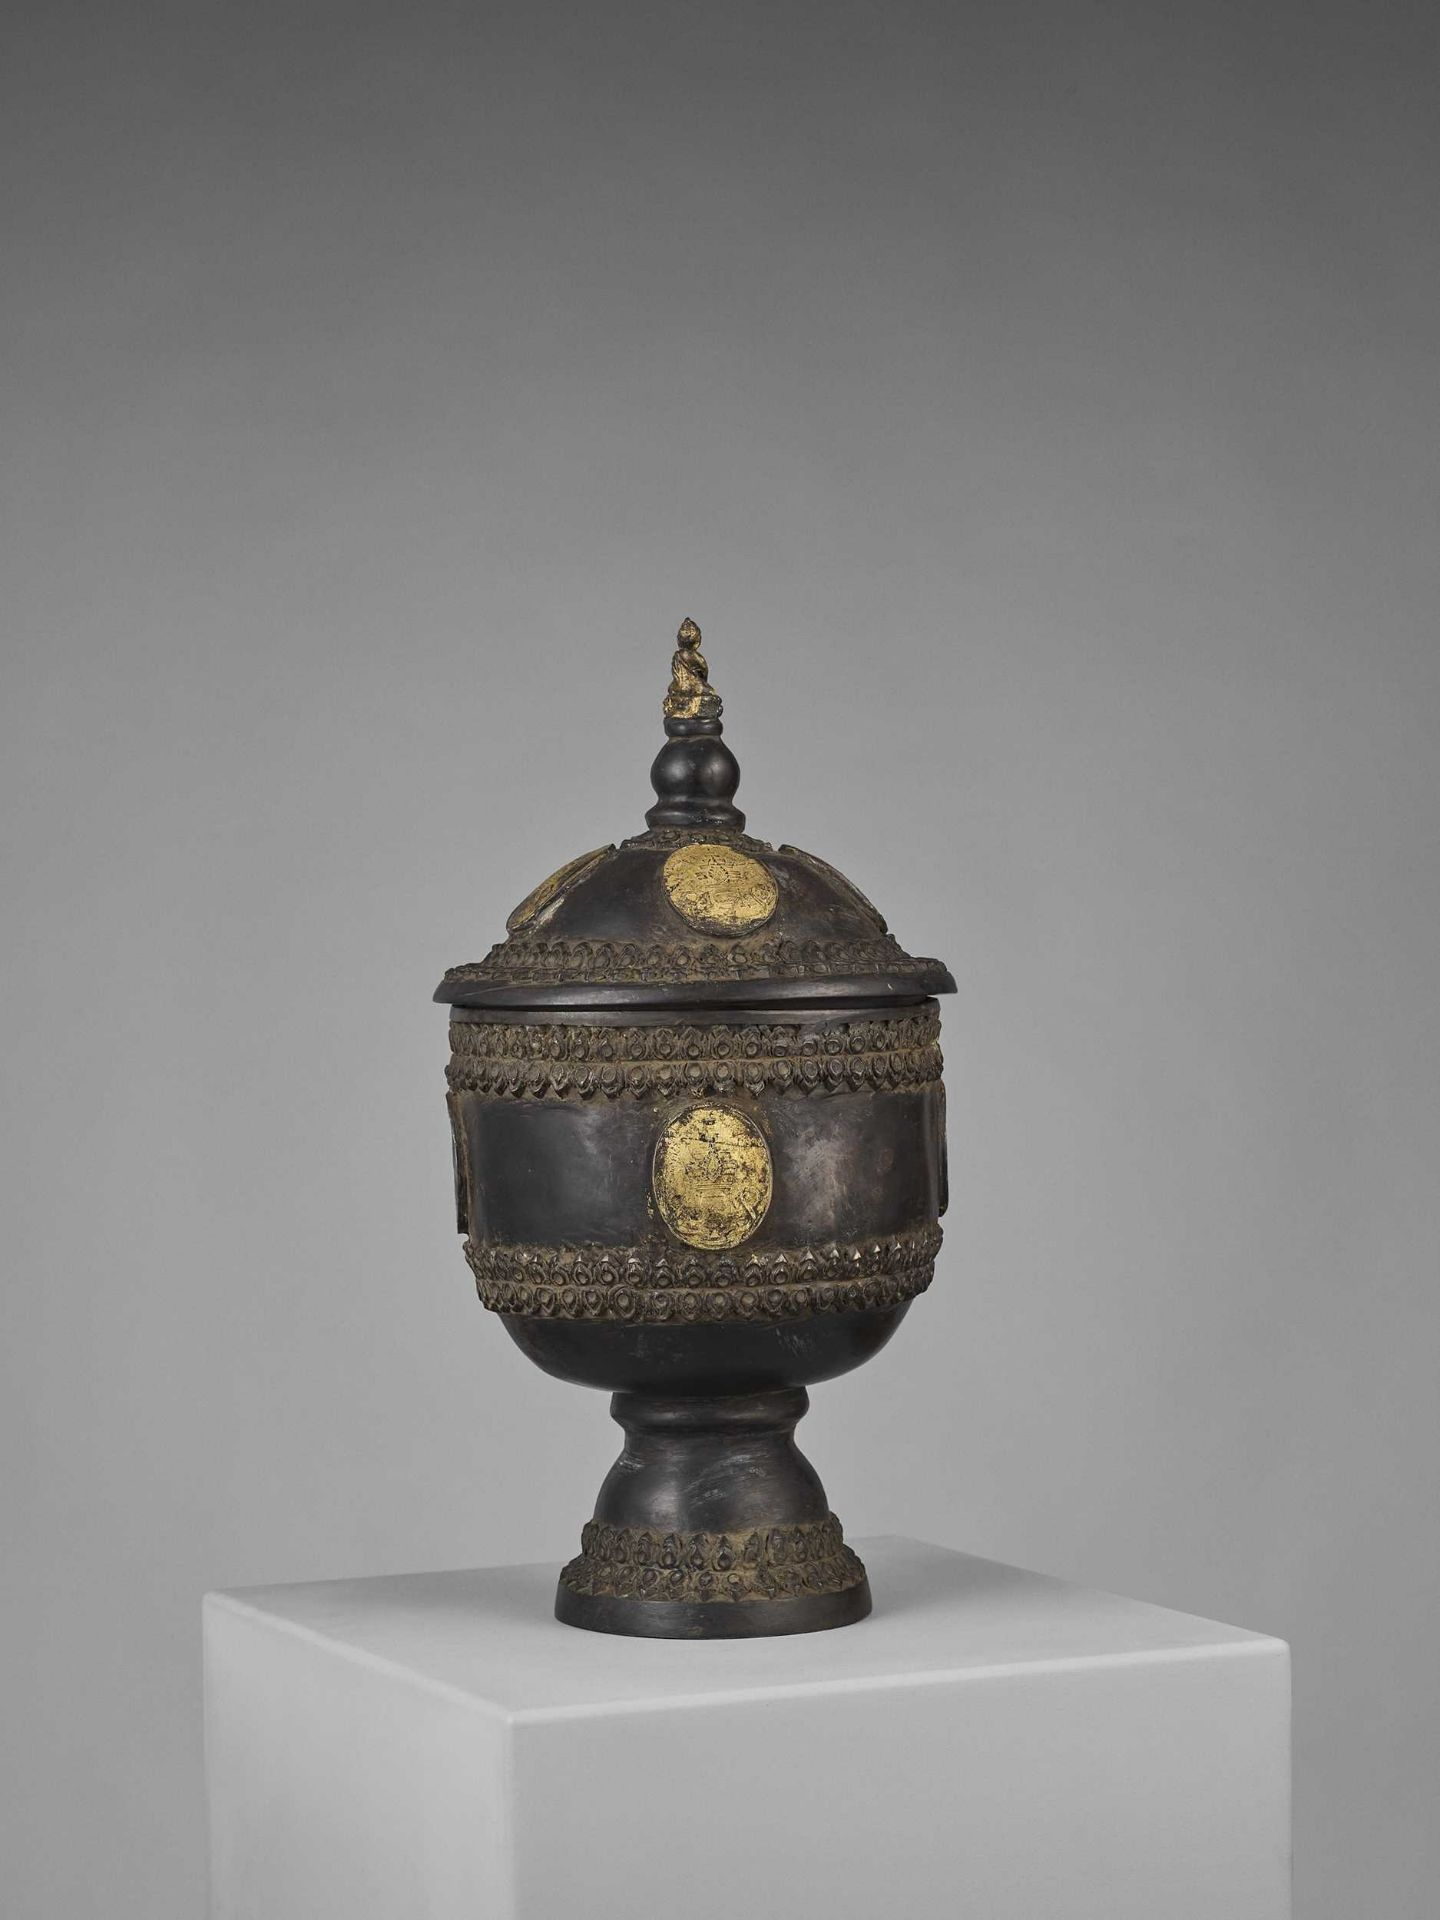 A CHAM PARCEL-GILT BRONZE VESSEL AND COVER WITH BUDDHA SHAKYAMUNI - Bild 5 aus 11